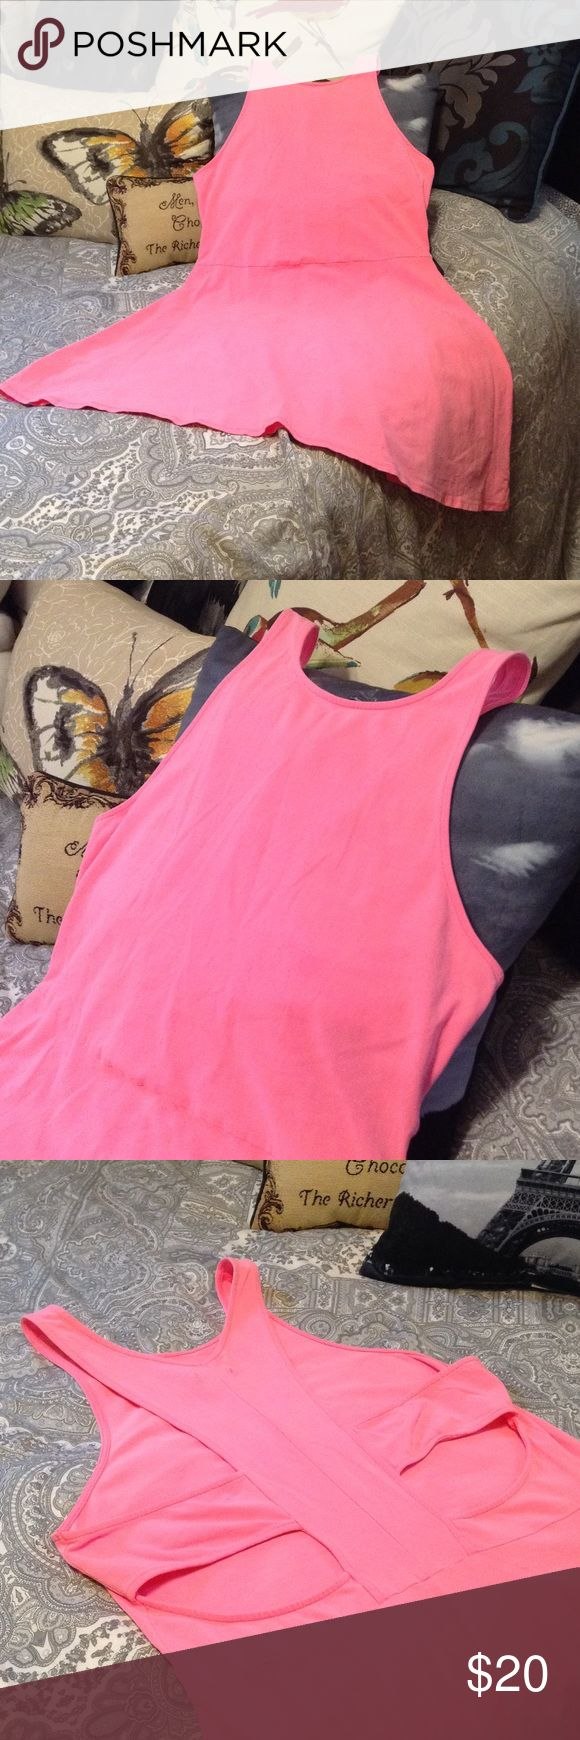 🌺🐚 Hot Pink Cutout Skater Dress🐚🌺 BRAND NEW! Super Cute Jersey Knit Skater Dress. Tank Top T-back Style with Cut Out Back. Hot Pink! Has Stretch...Cute with Sandals, over a Swimsuit, etc. American Eagle Outfitters Size Large American Eagle Outfitters Dresses